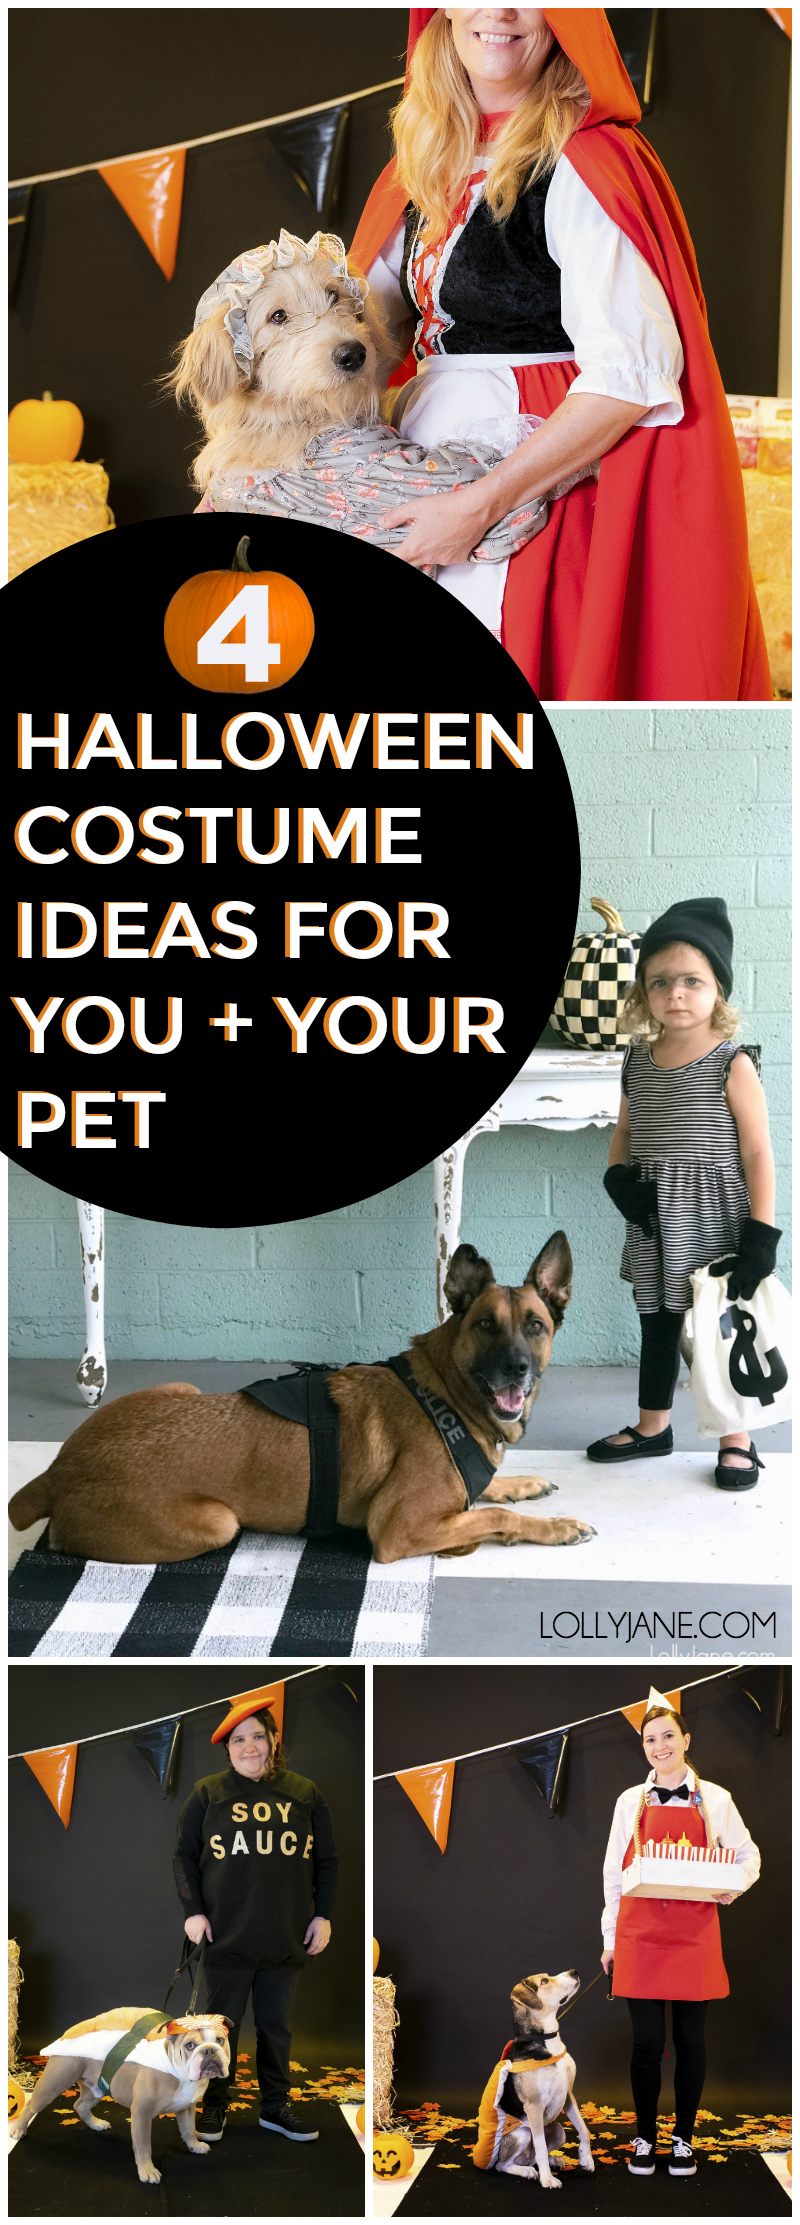 Cute and Easy Halloween Ideas for You and Your Pet! FUN!